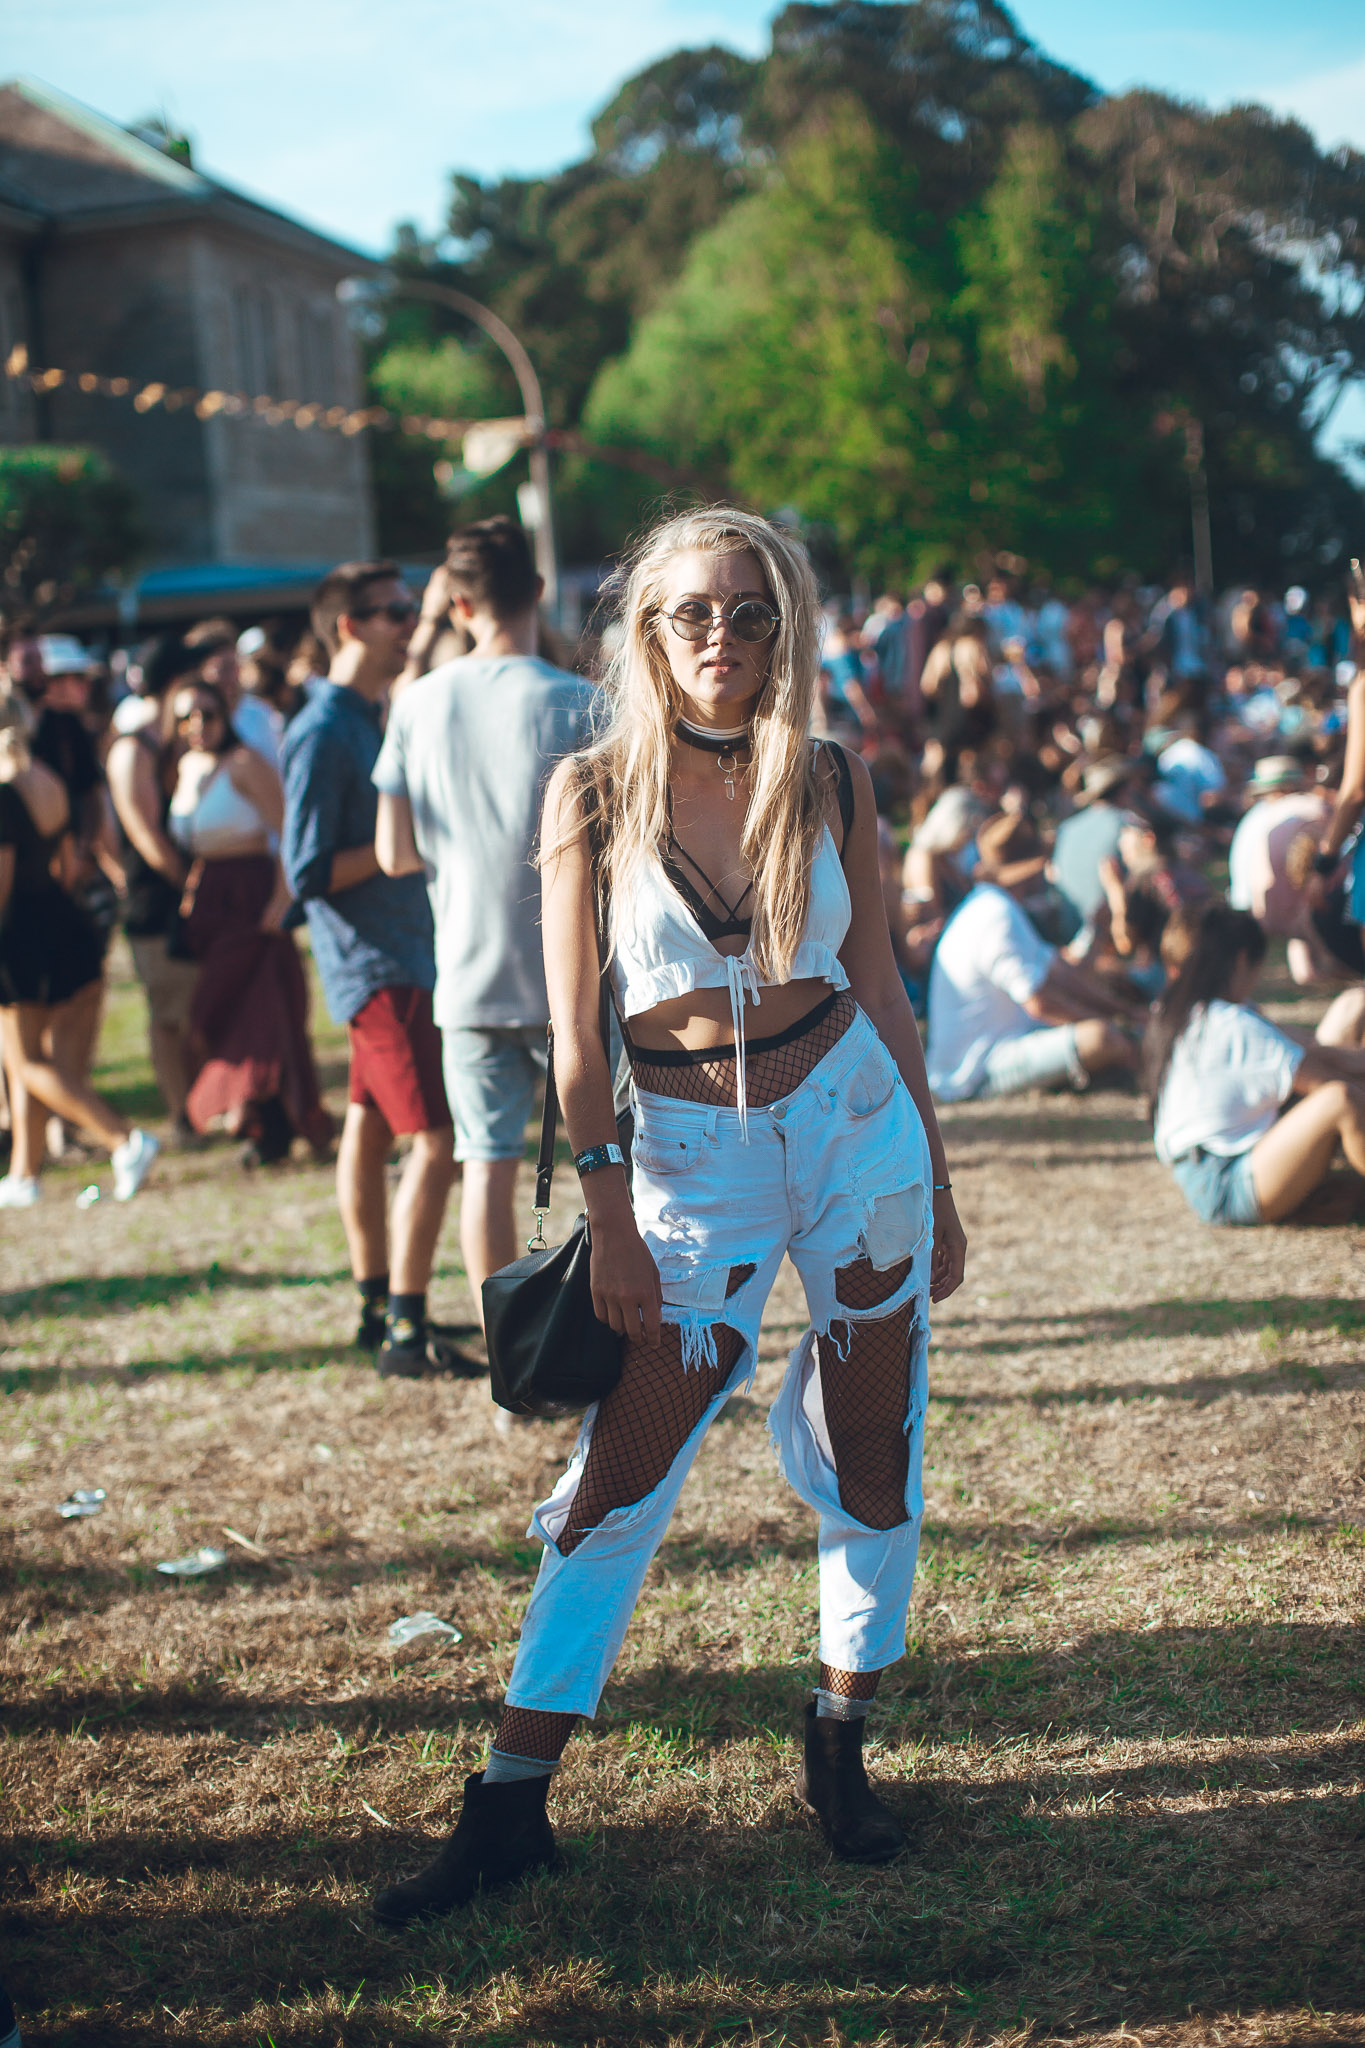 laneway_photo-by-oliver-minnett-00303